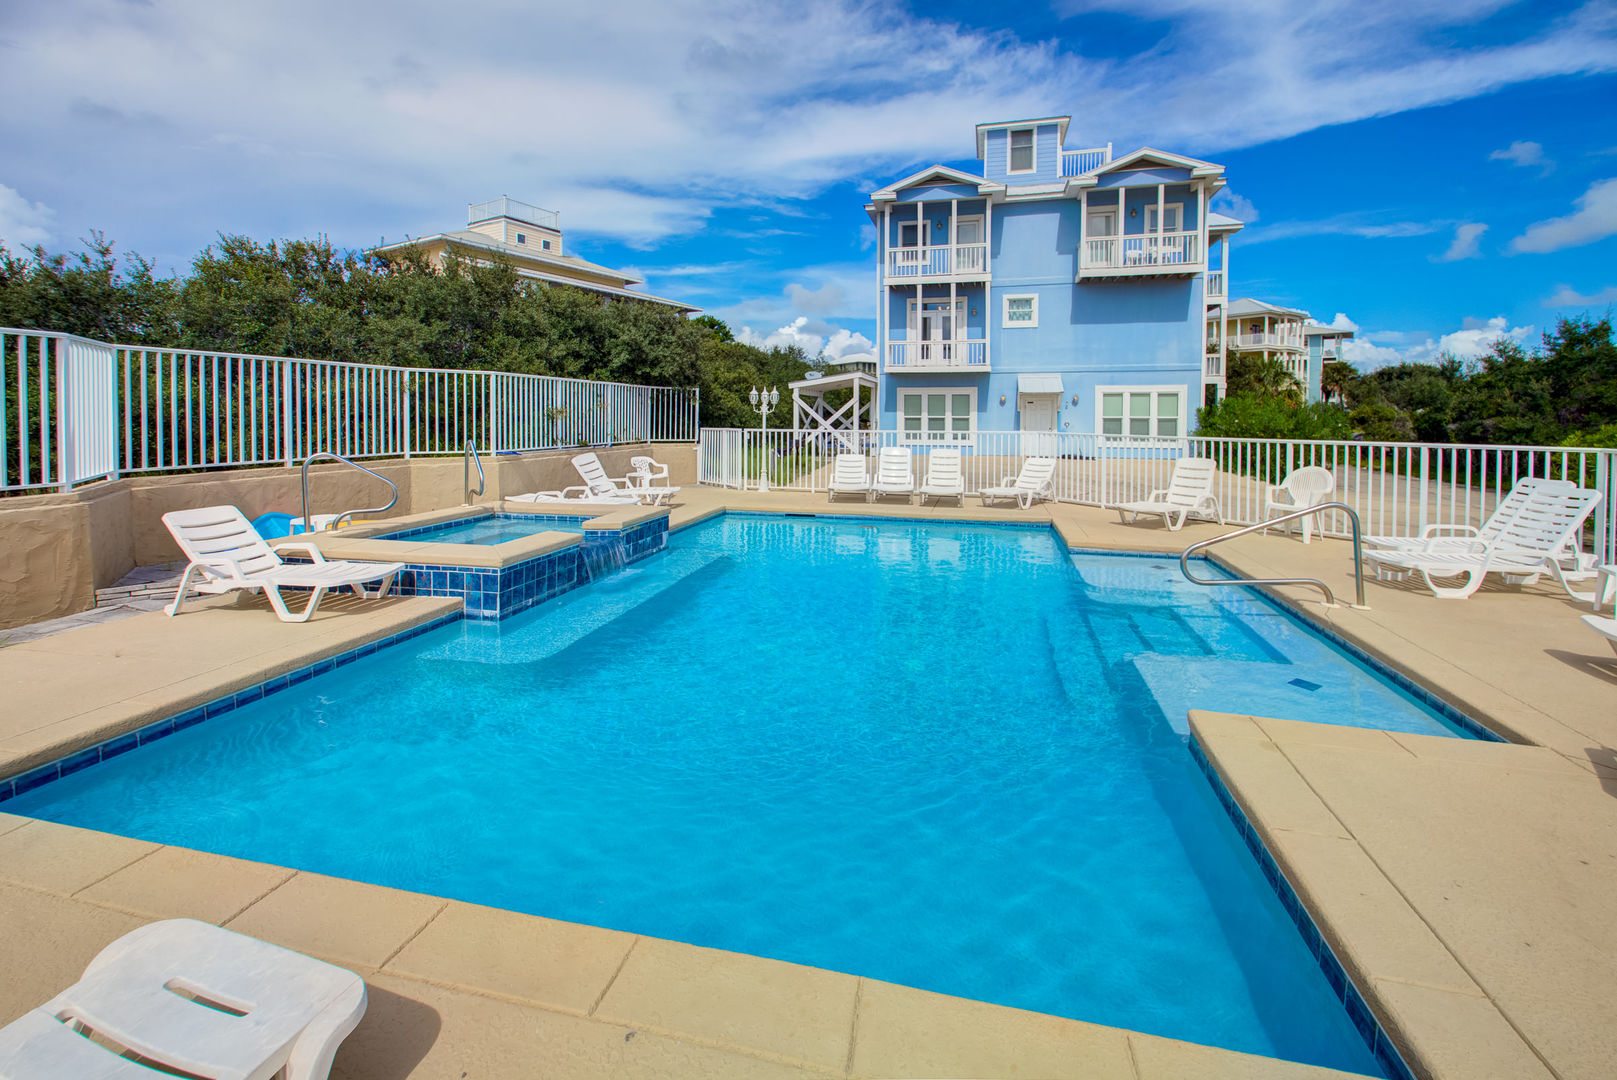 Guests Can Relax by the Large Community Pool.